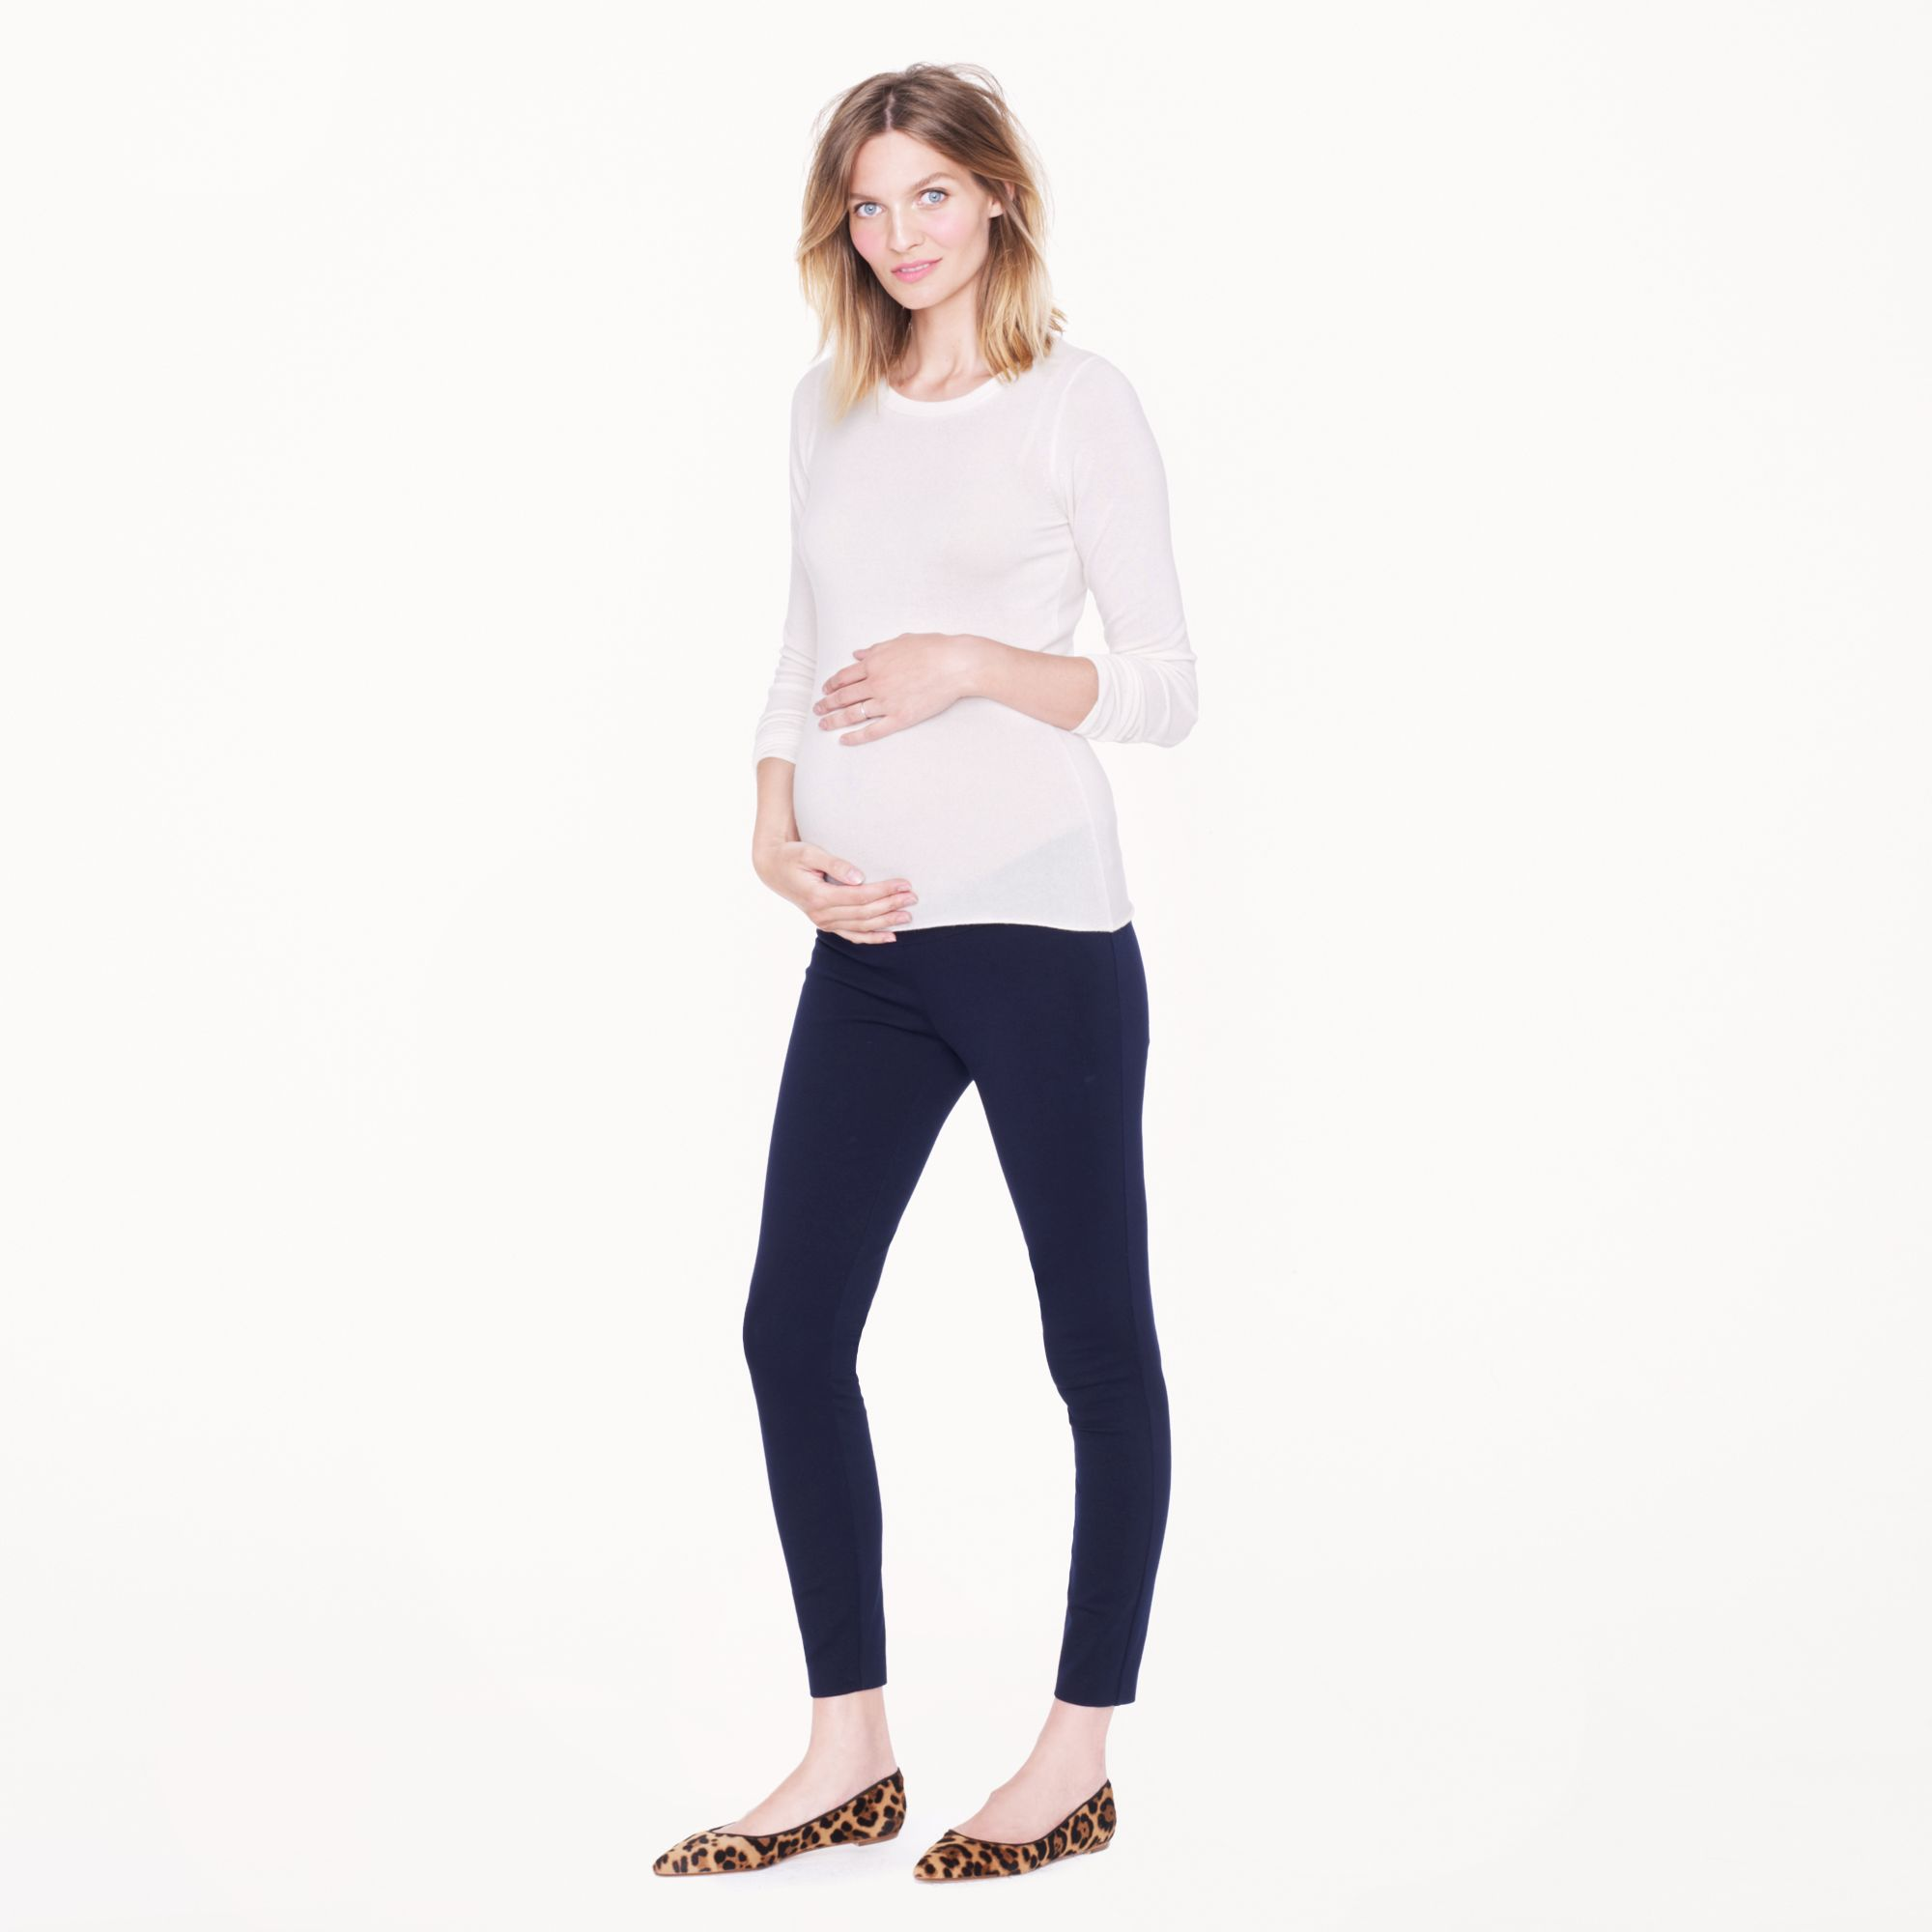 MATERNITY CLOTHES. Most popular searches this week: Maternity Jeans and Nursing Tops Funmum design maternity clothes to guarantee a stylish pregnancy. Whatever the season, Funmum will have the perfect maternity wear outfit for you.